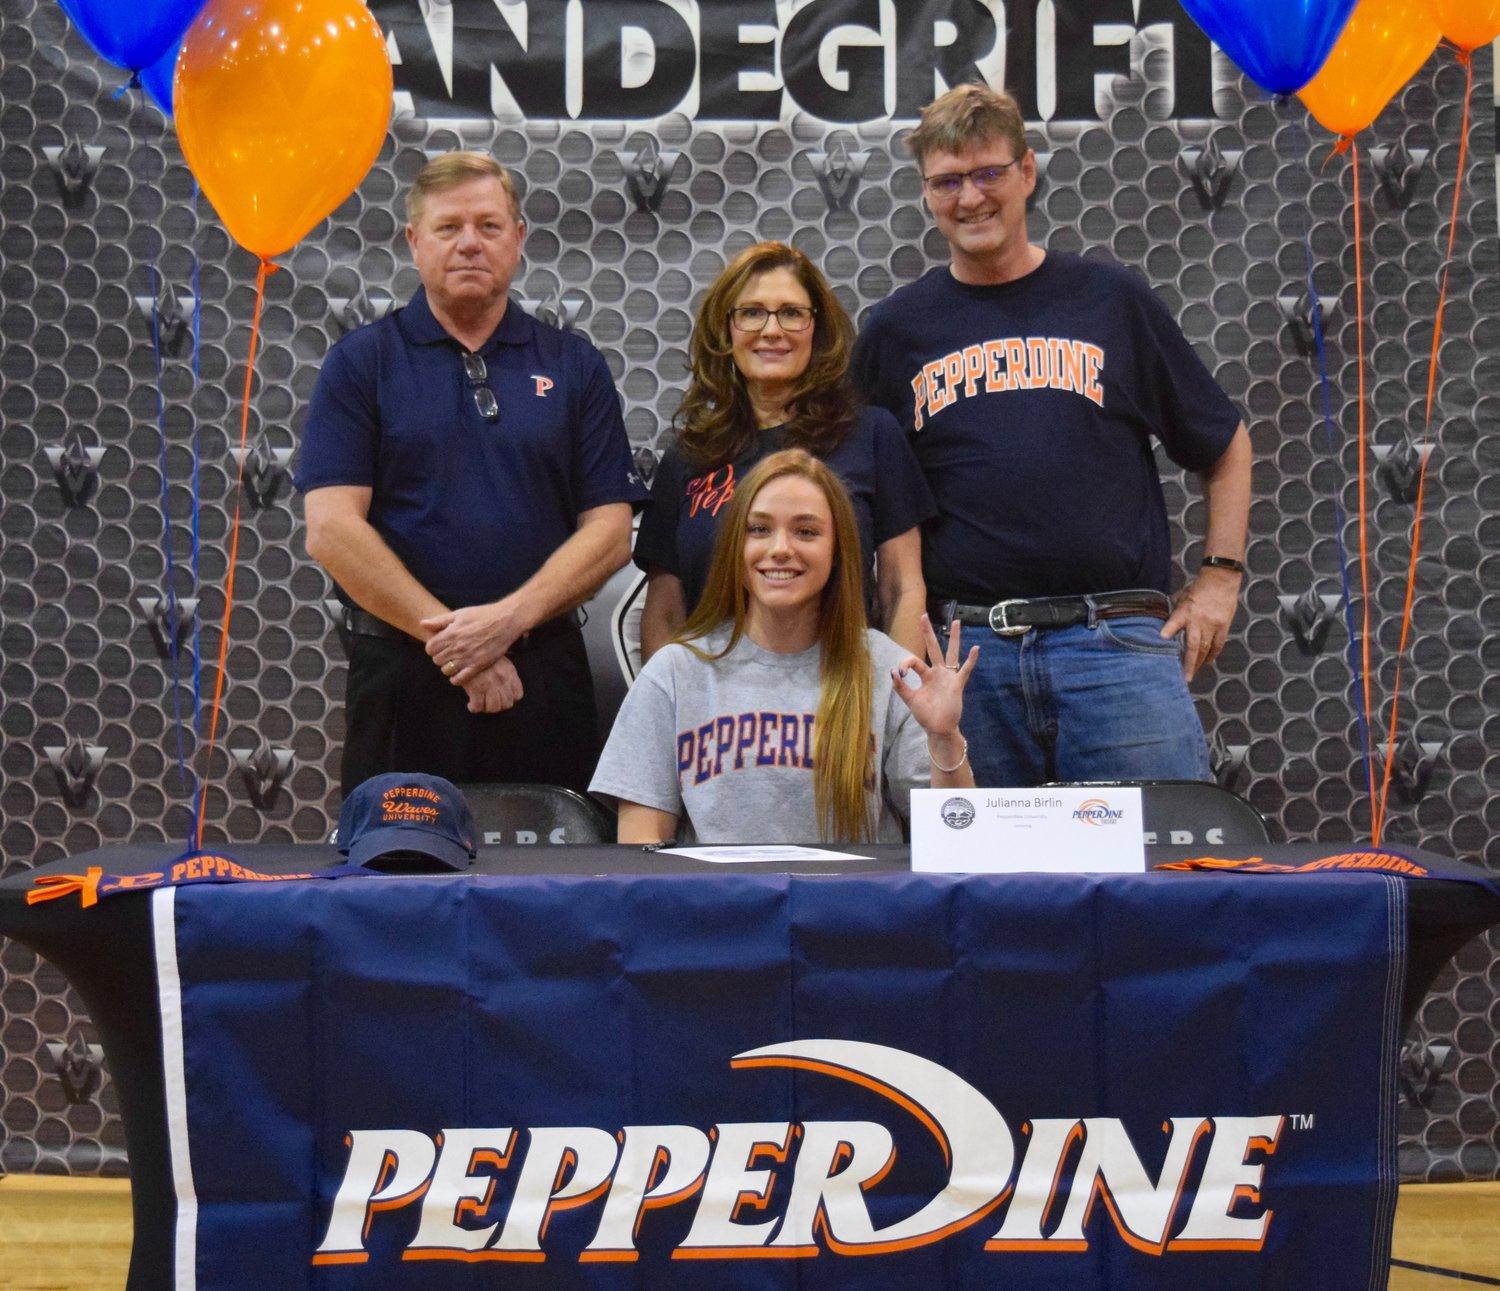 Julianna Birlin signed on to swim at Pepperdine at a signing day celebration Friday morning at Vandegrift High School.